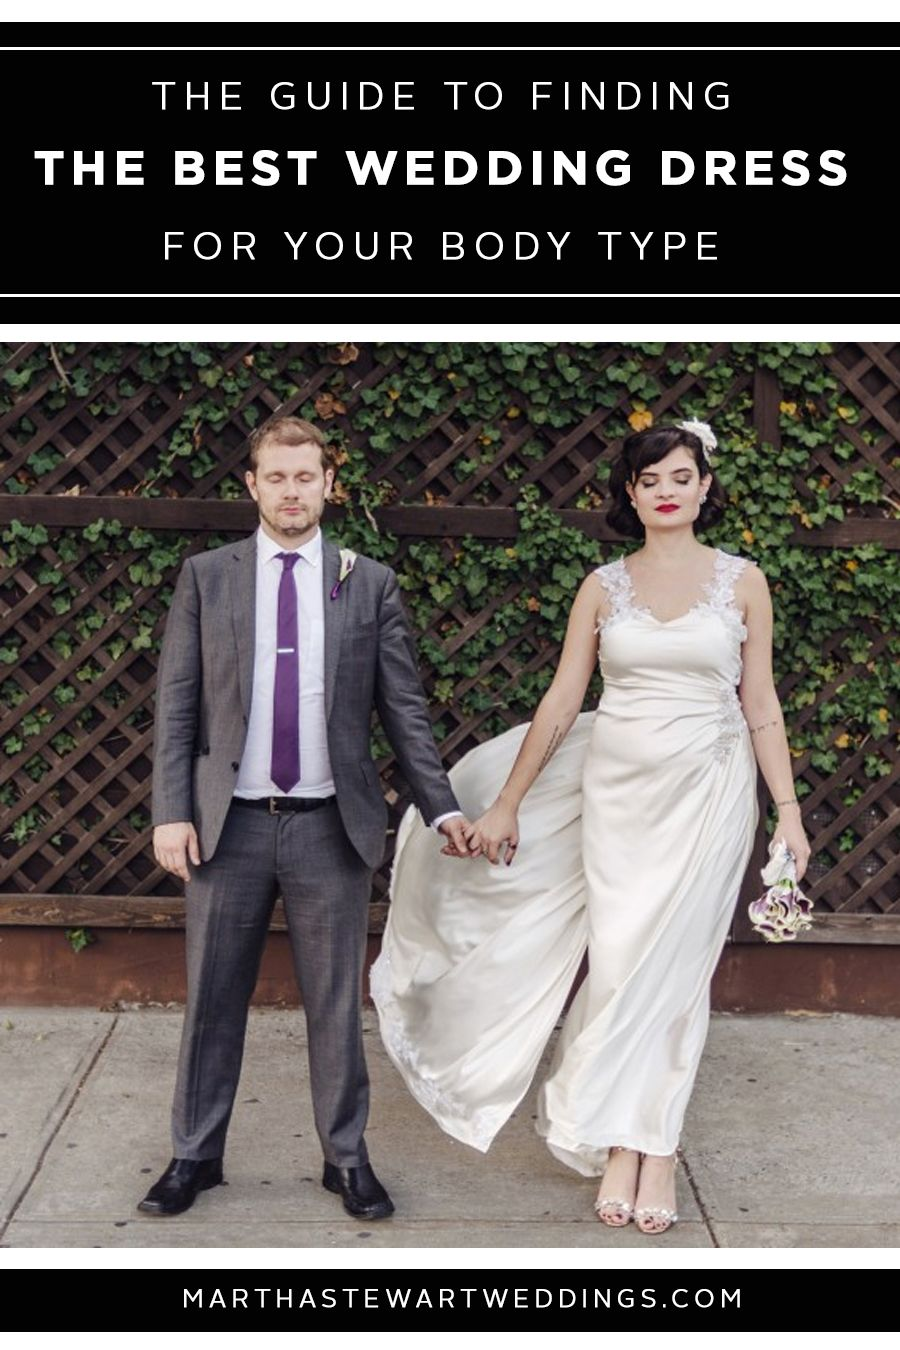 Wedding dress for body type  The Guide to Finding the Best Wedding Dress for Your Body Type